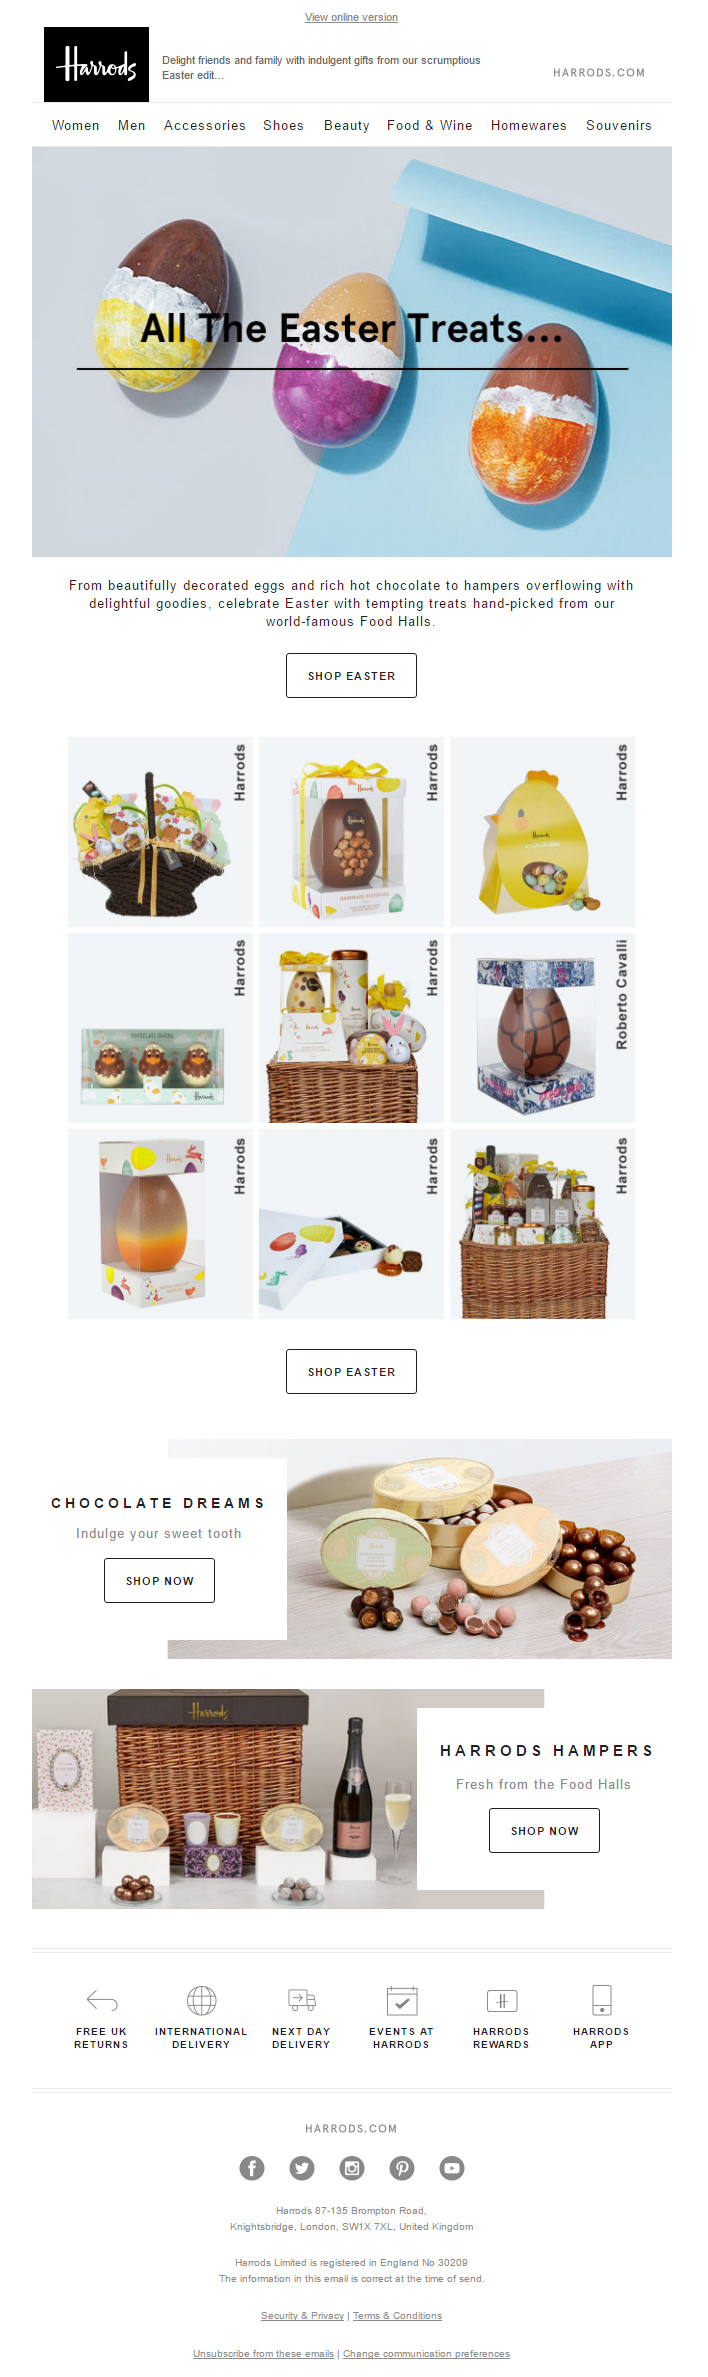 Designer clothing luxury gifts and fashion accessories harrods easter treats email from harrods emailmarketing email marketing retail easter negle Gallery